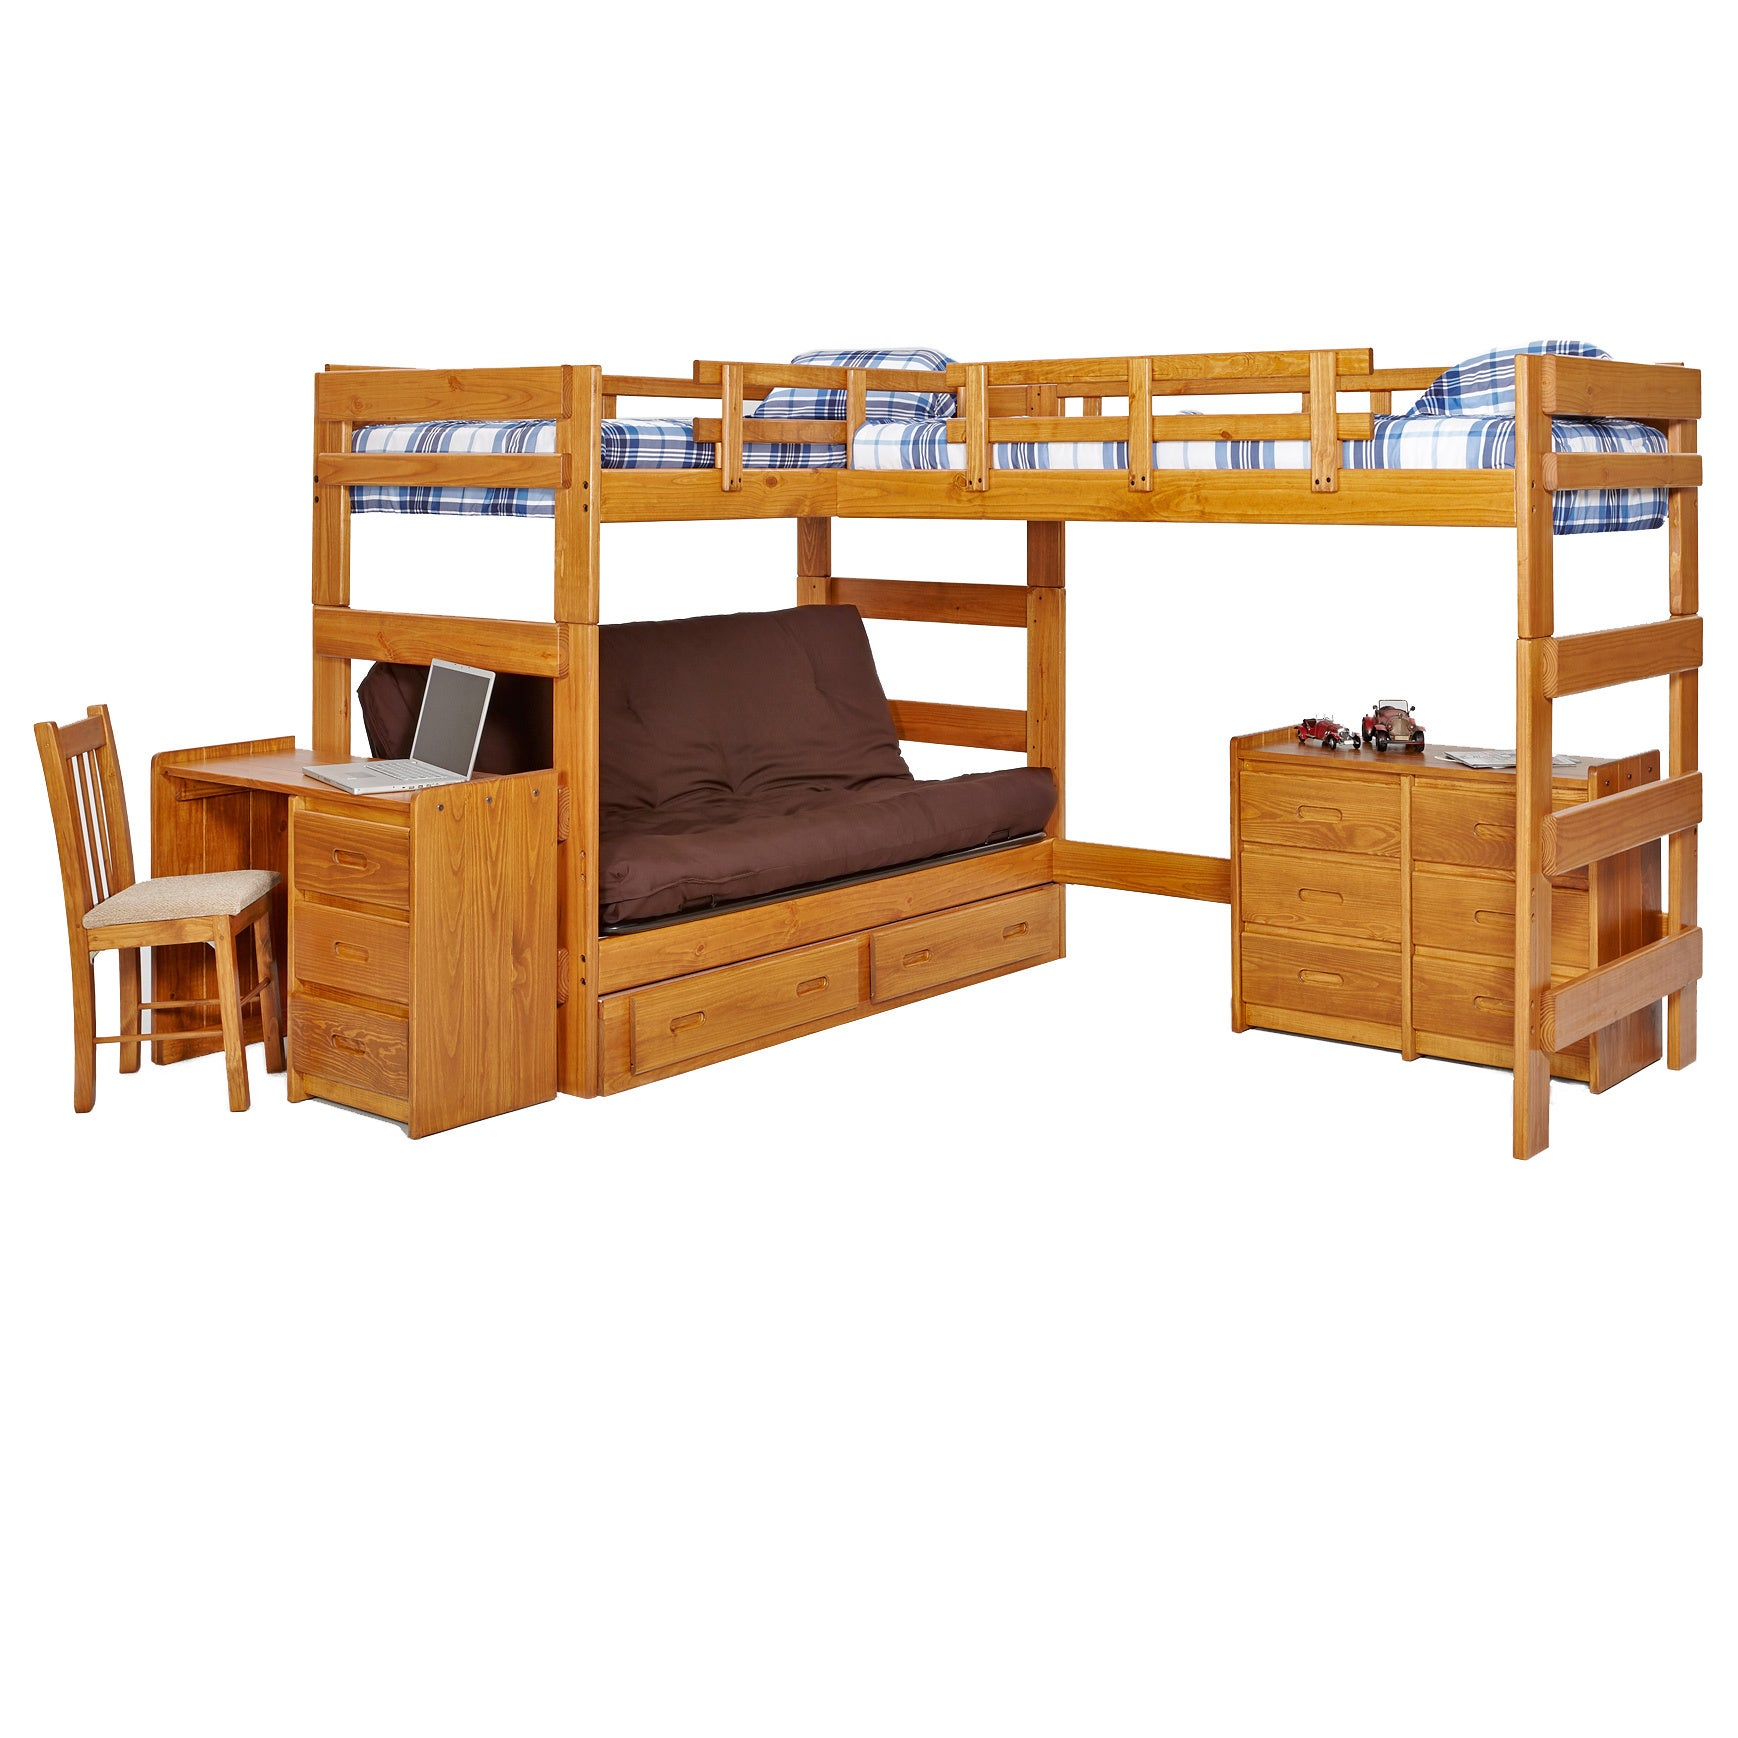 Shop Woodcrest Heartland Collection Twin Or Futon Bunk Bed With